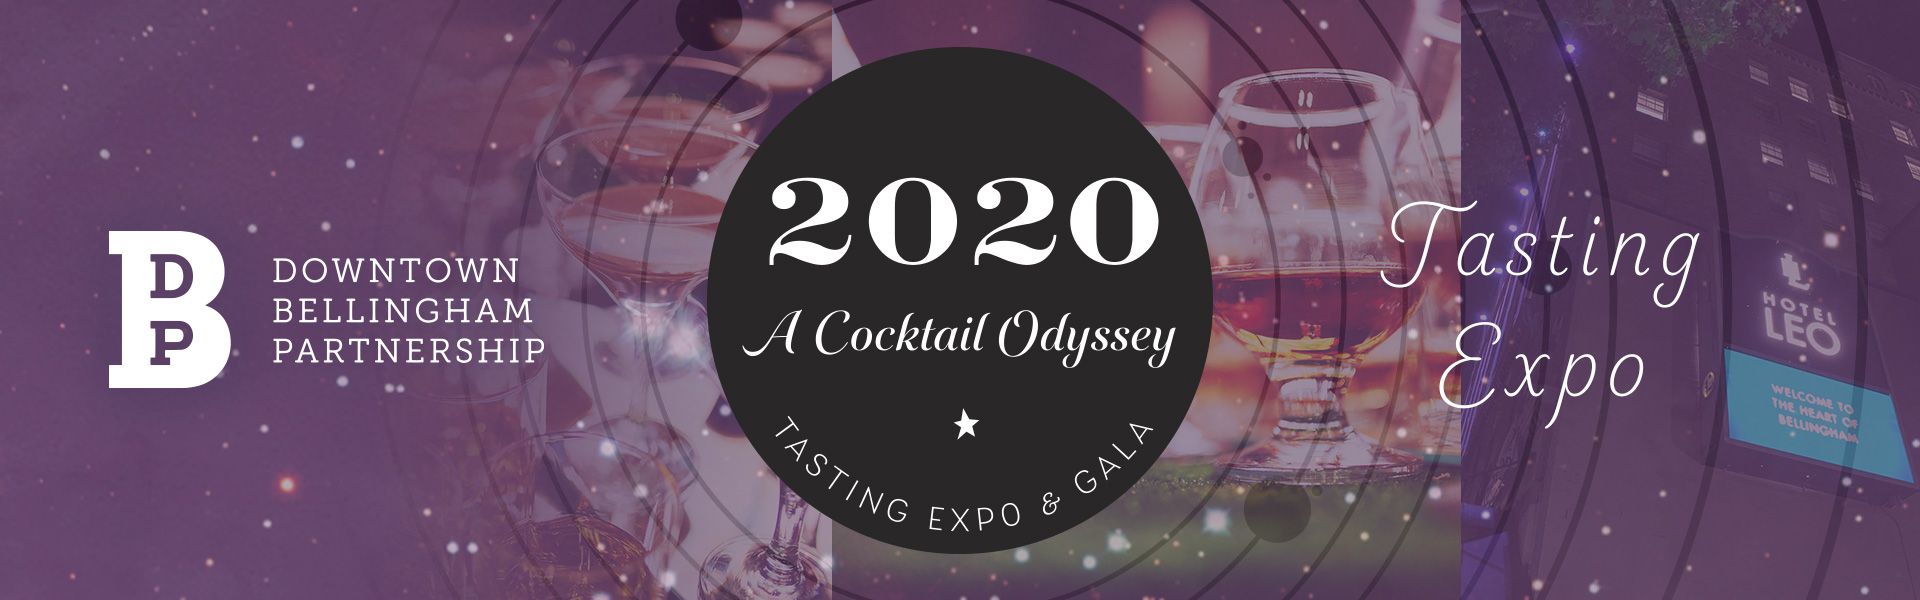 2020 A Cocktail Odyssey: Tasting Expo & Gala